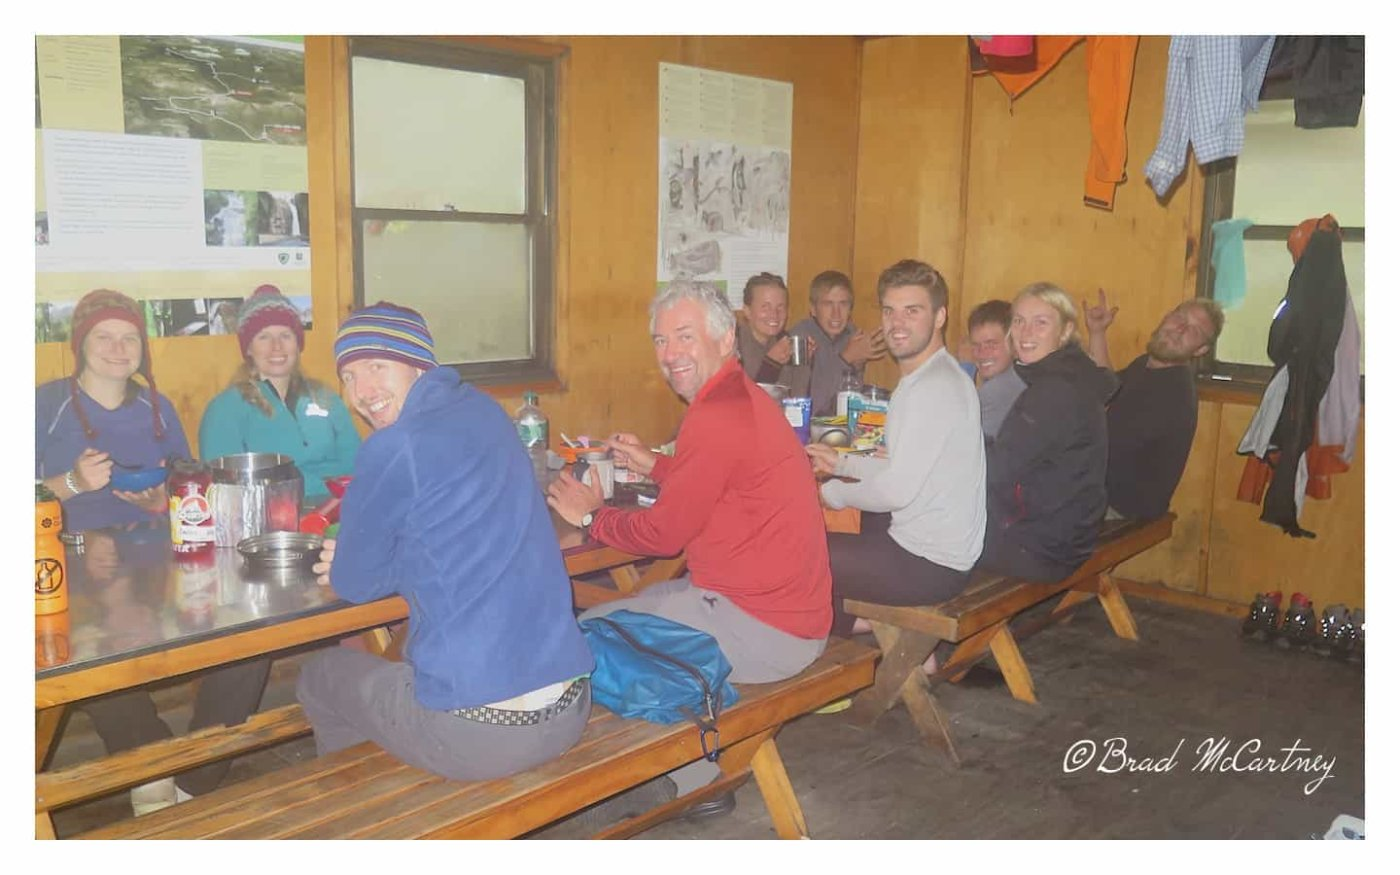 Warming up in the hut after and wet, cold and windy day